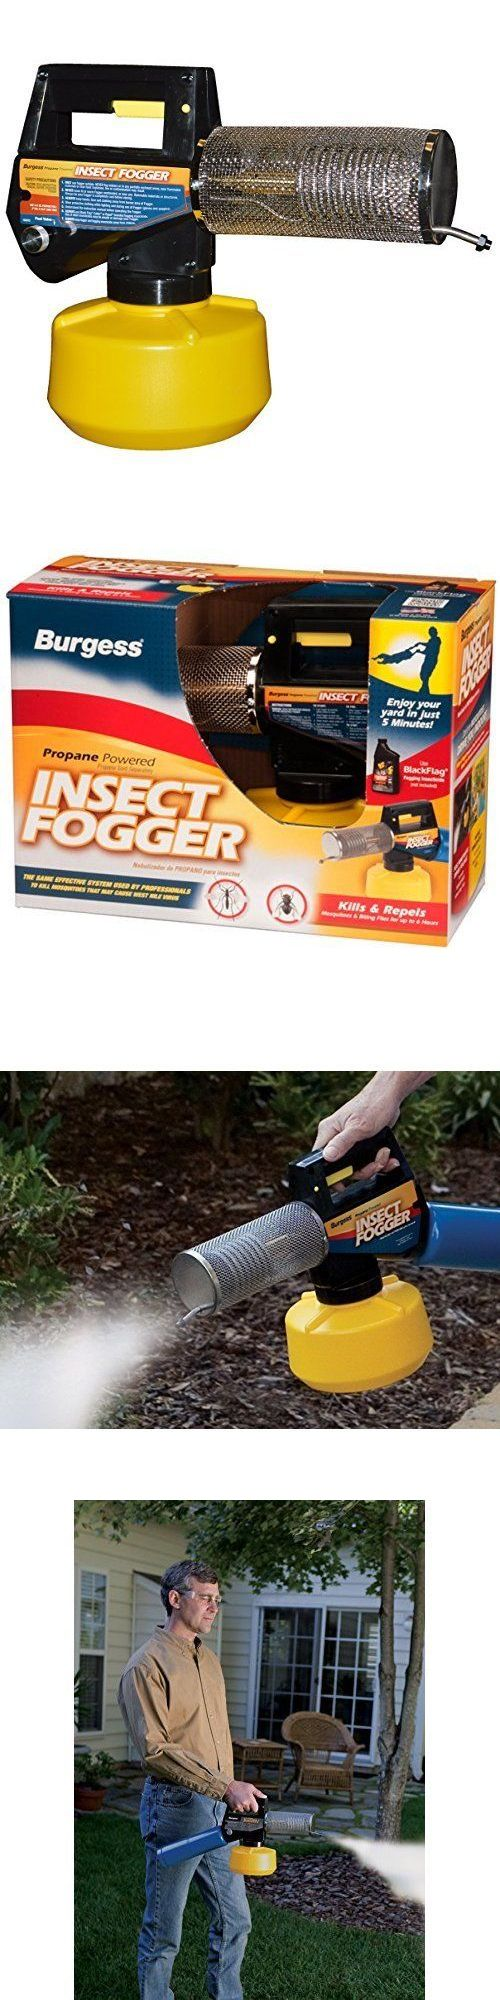 Foggers 181037: Propane Insect Fogger For Fast And Effective Mosquito Control In Your Yard -> BUY IT NOW ONLY: $83.48 on eBay!